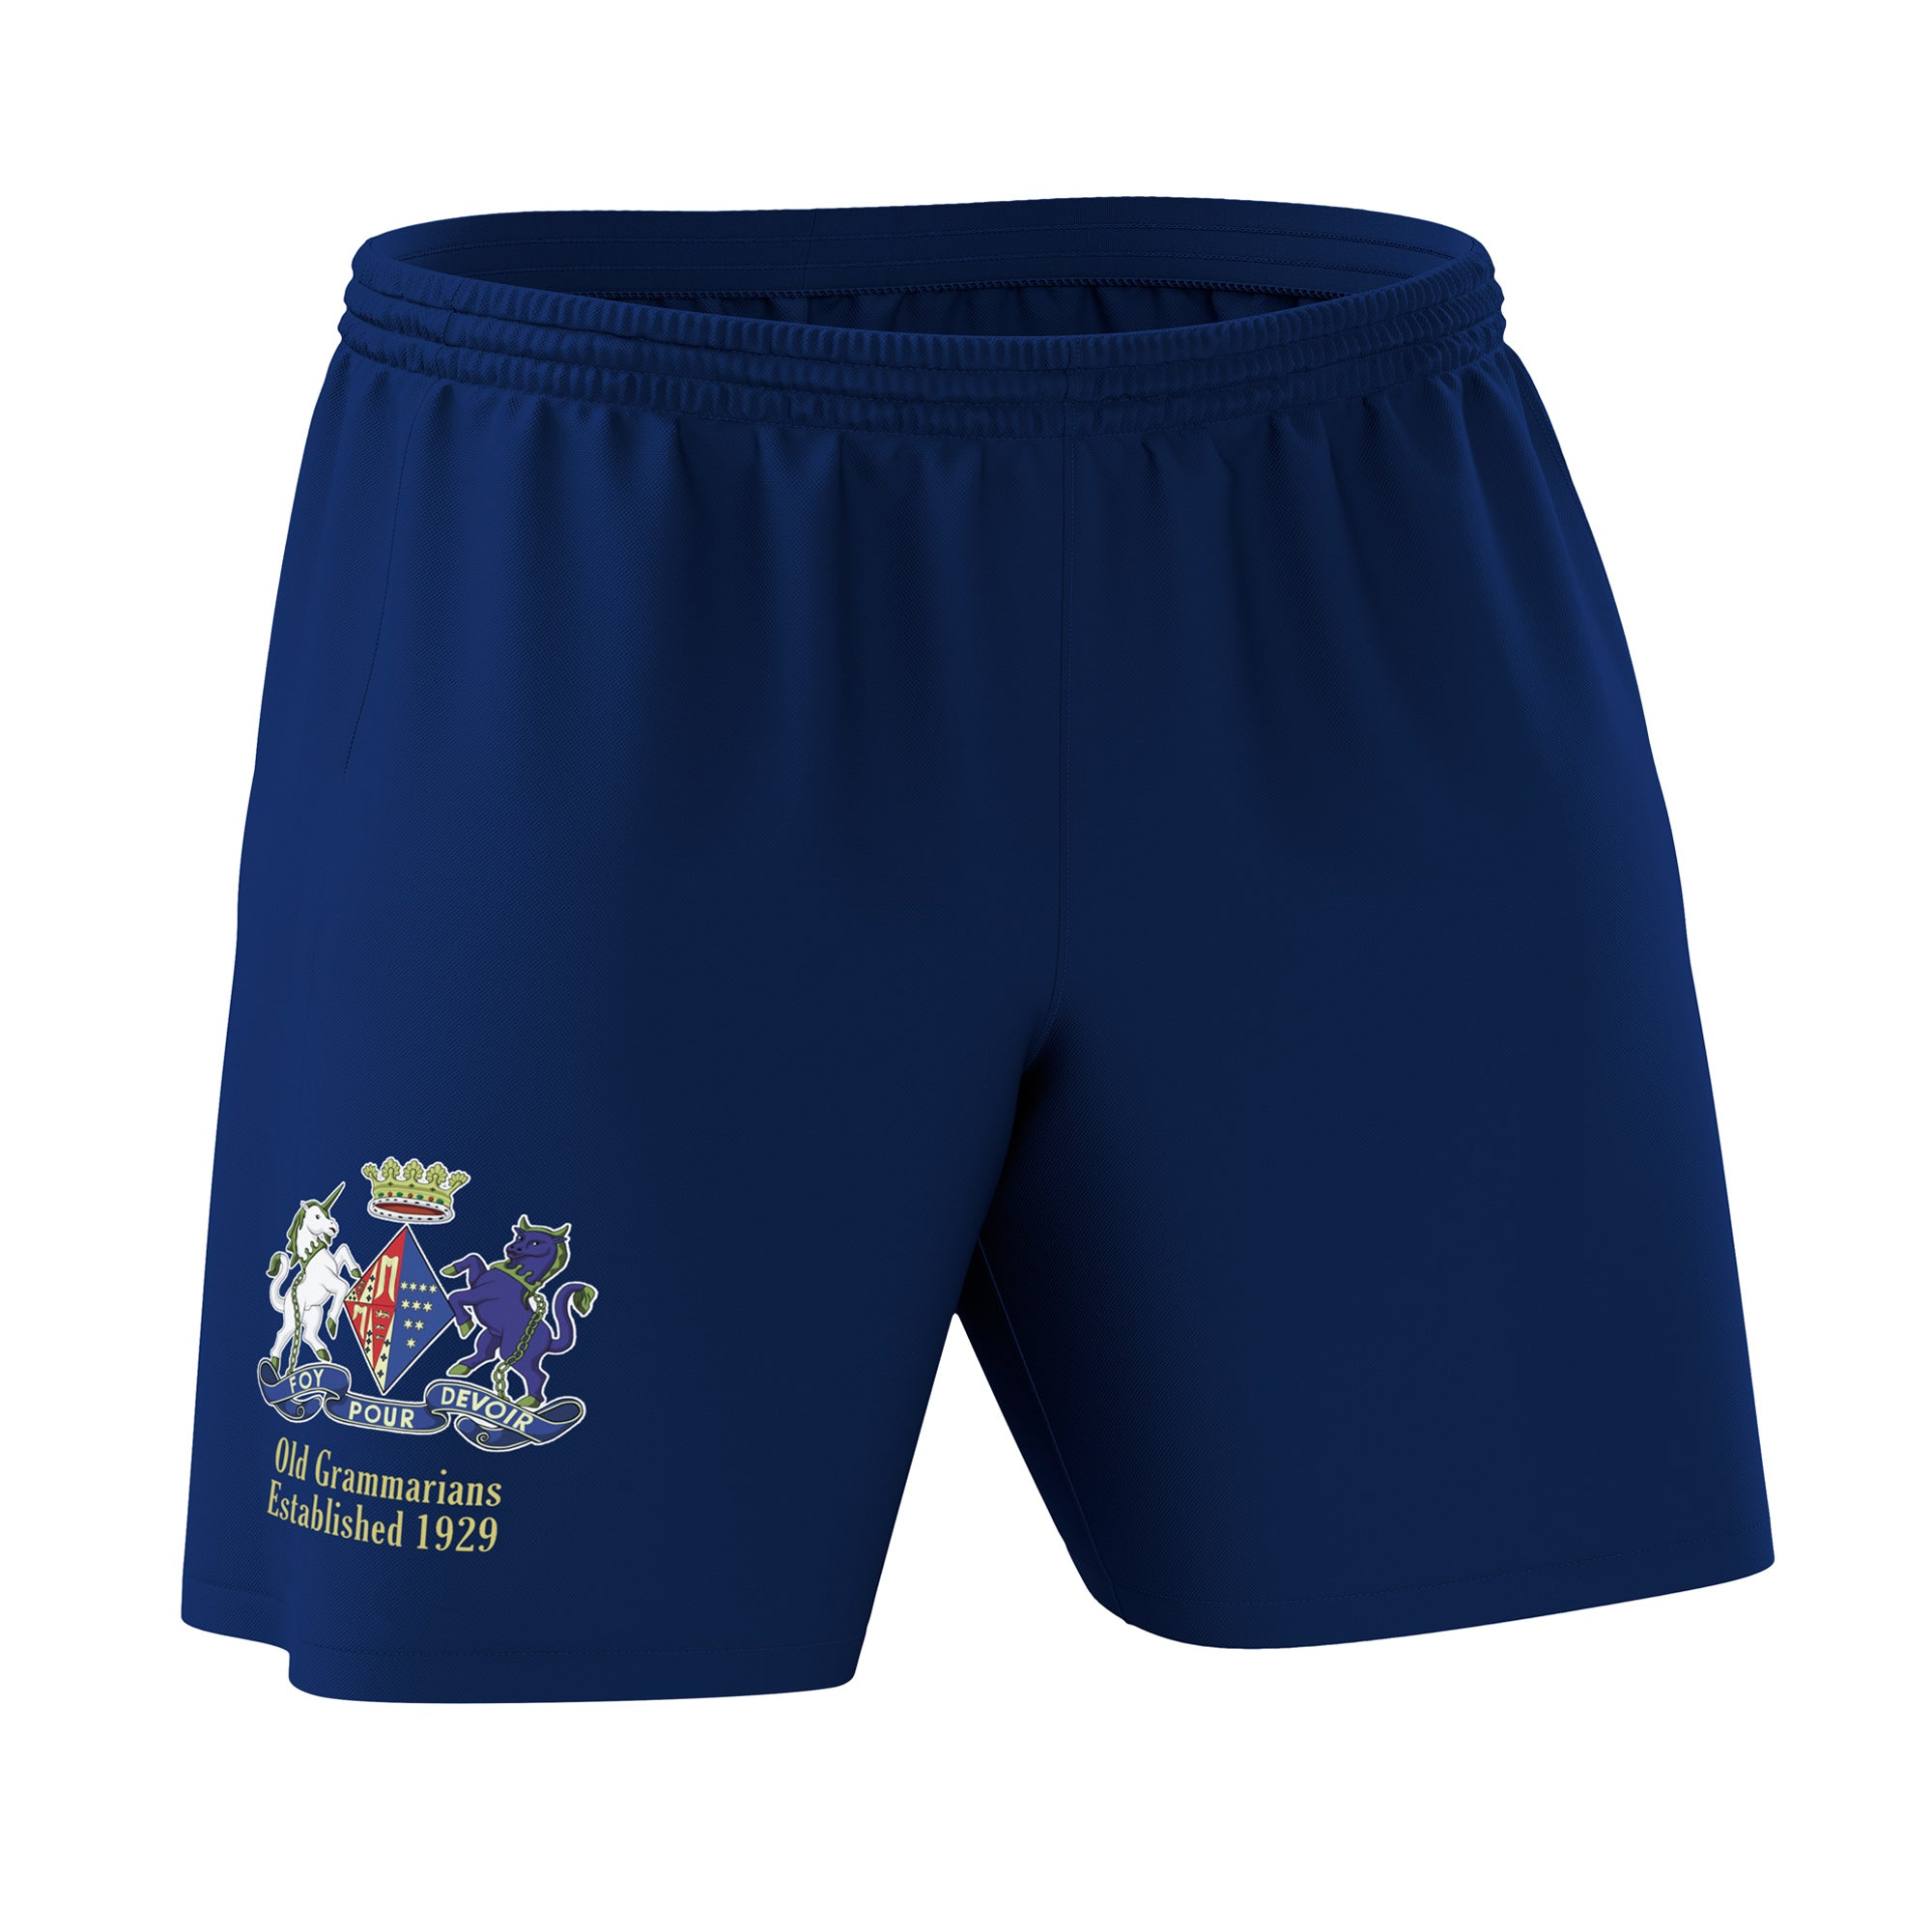 OGRFC Adult - Playing Shorts